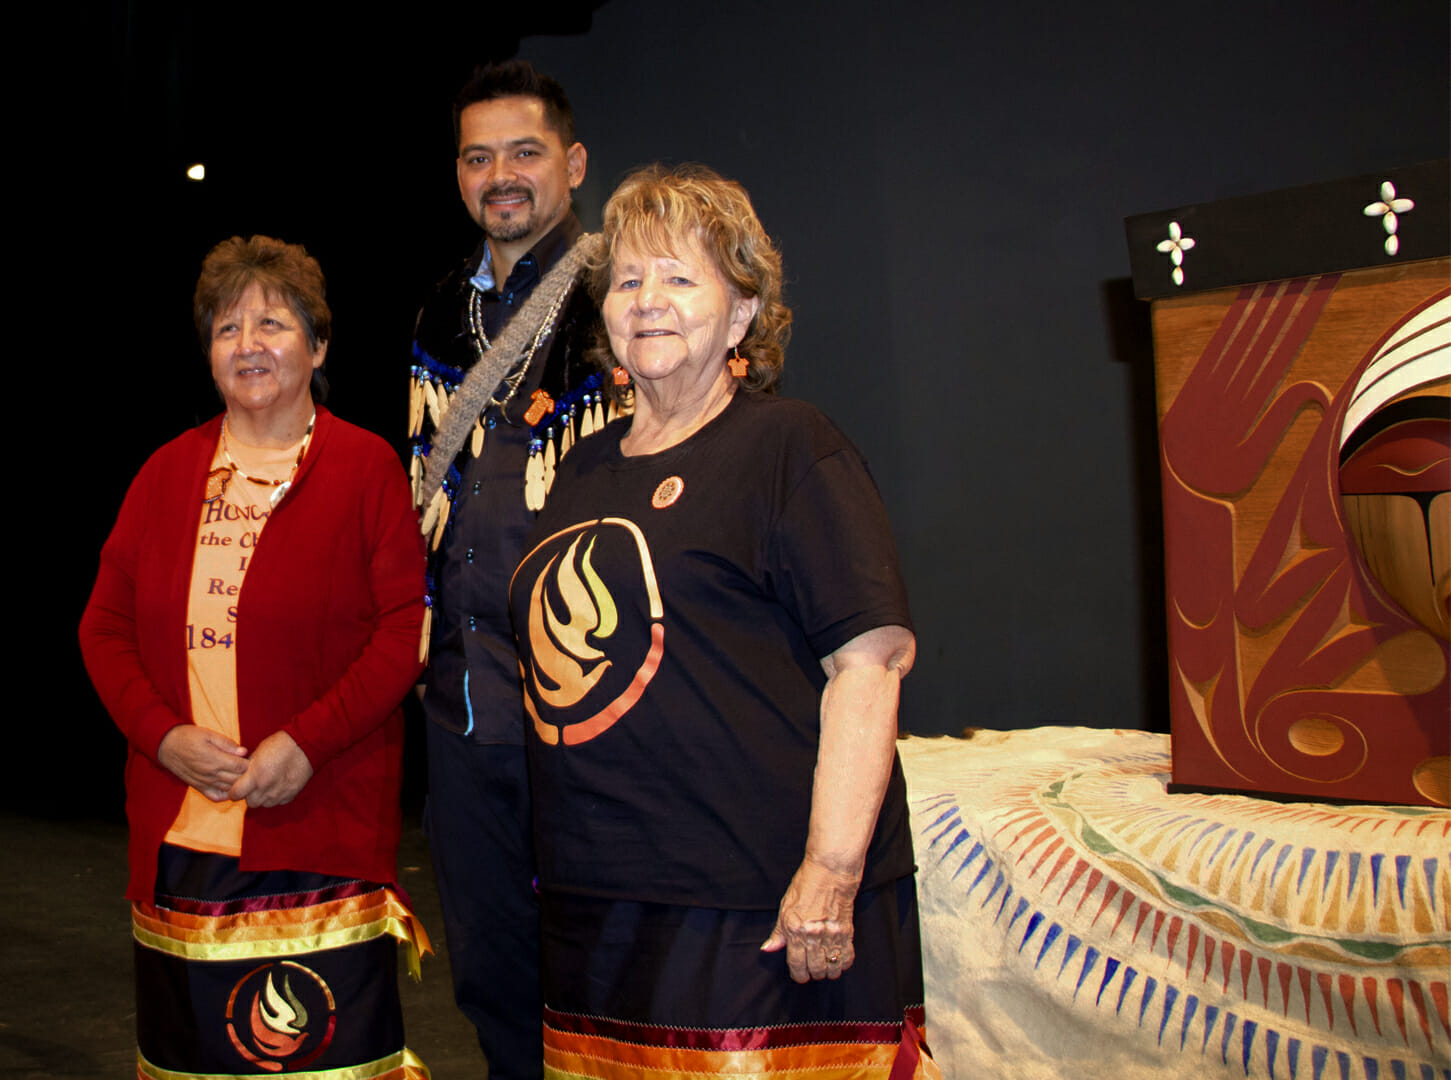 Two women elders at event